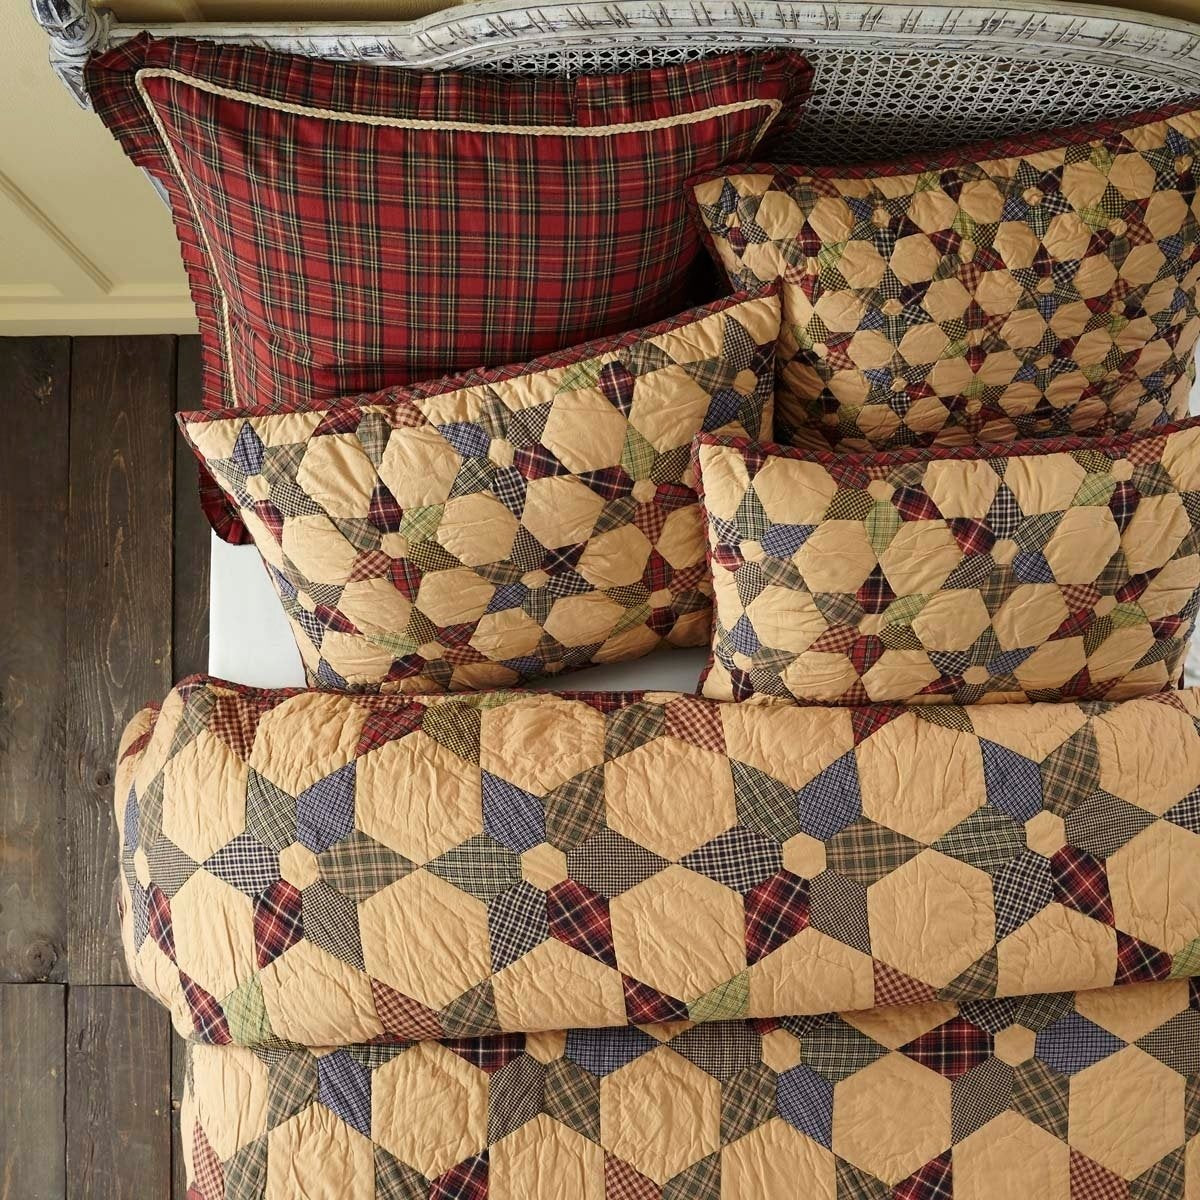 Tartan Patchwork Pattern Quilt Plaid Lodge Primitive Cabin Star Hexagons Geometric Western Adult